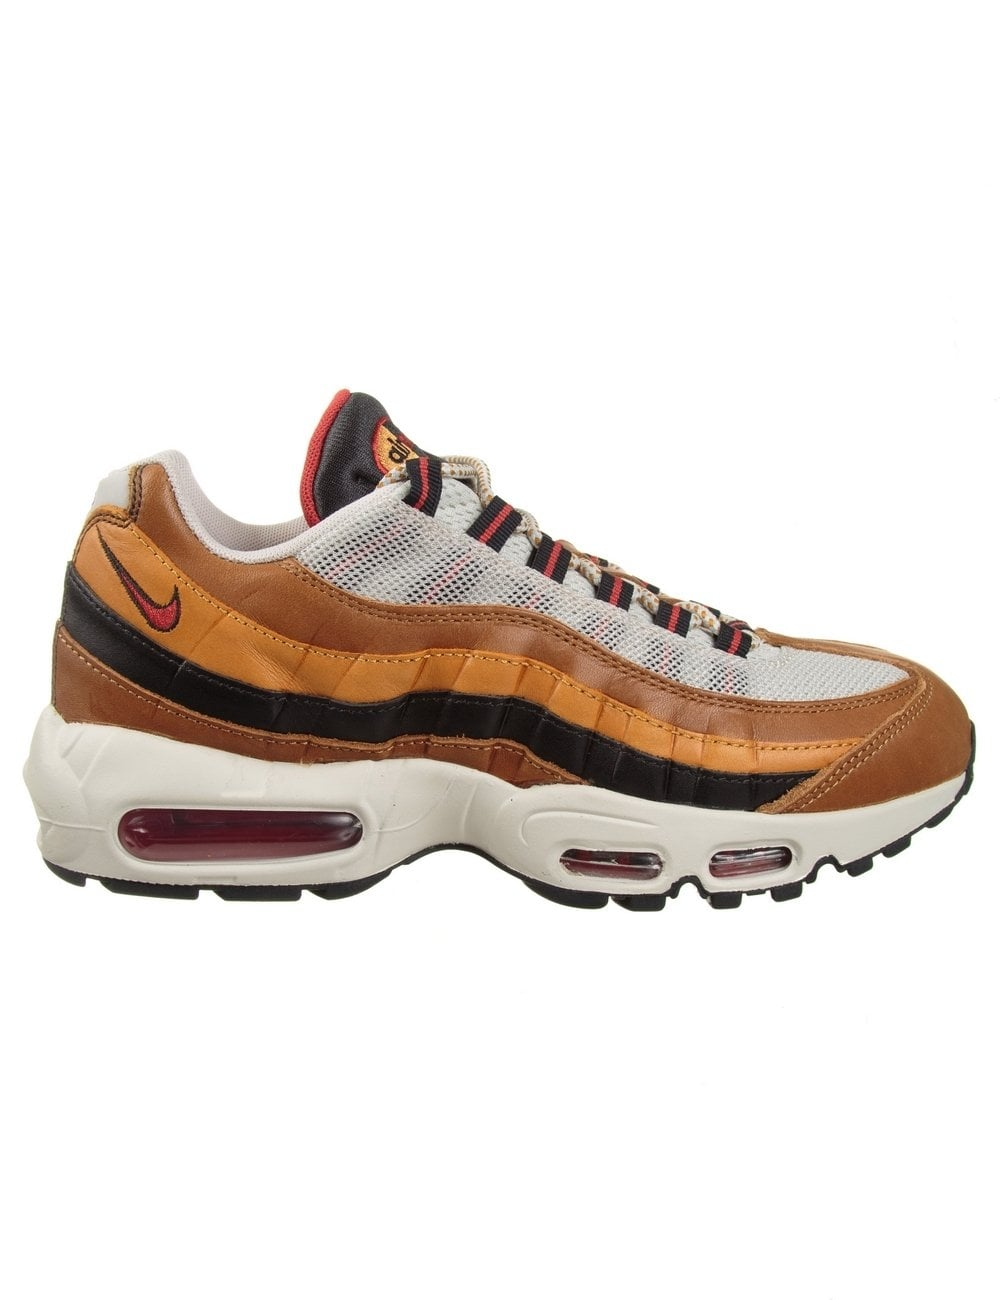 Nike Air Max 95 QS - Escape Pack - Footwear from Fat Buddha Store UK